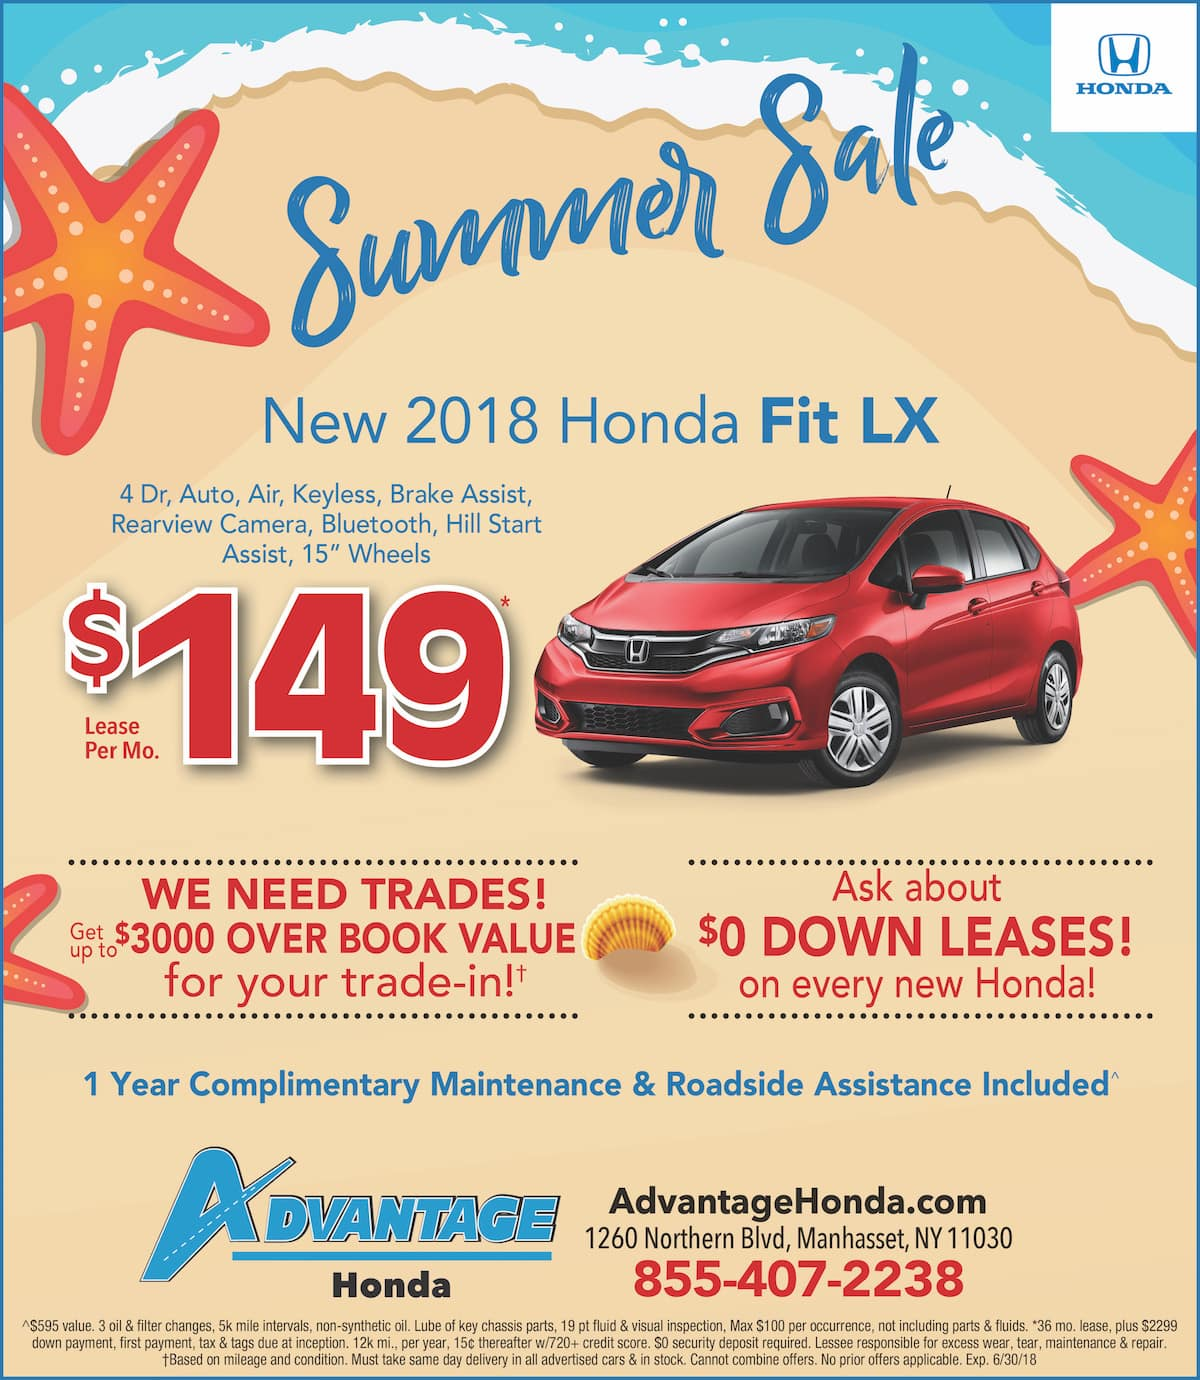 New Honda Fit Lease Special in Manhasset, New York